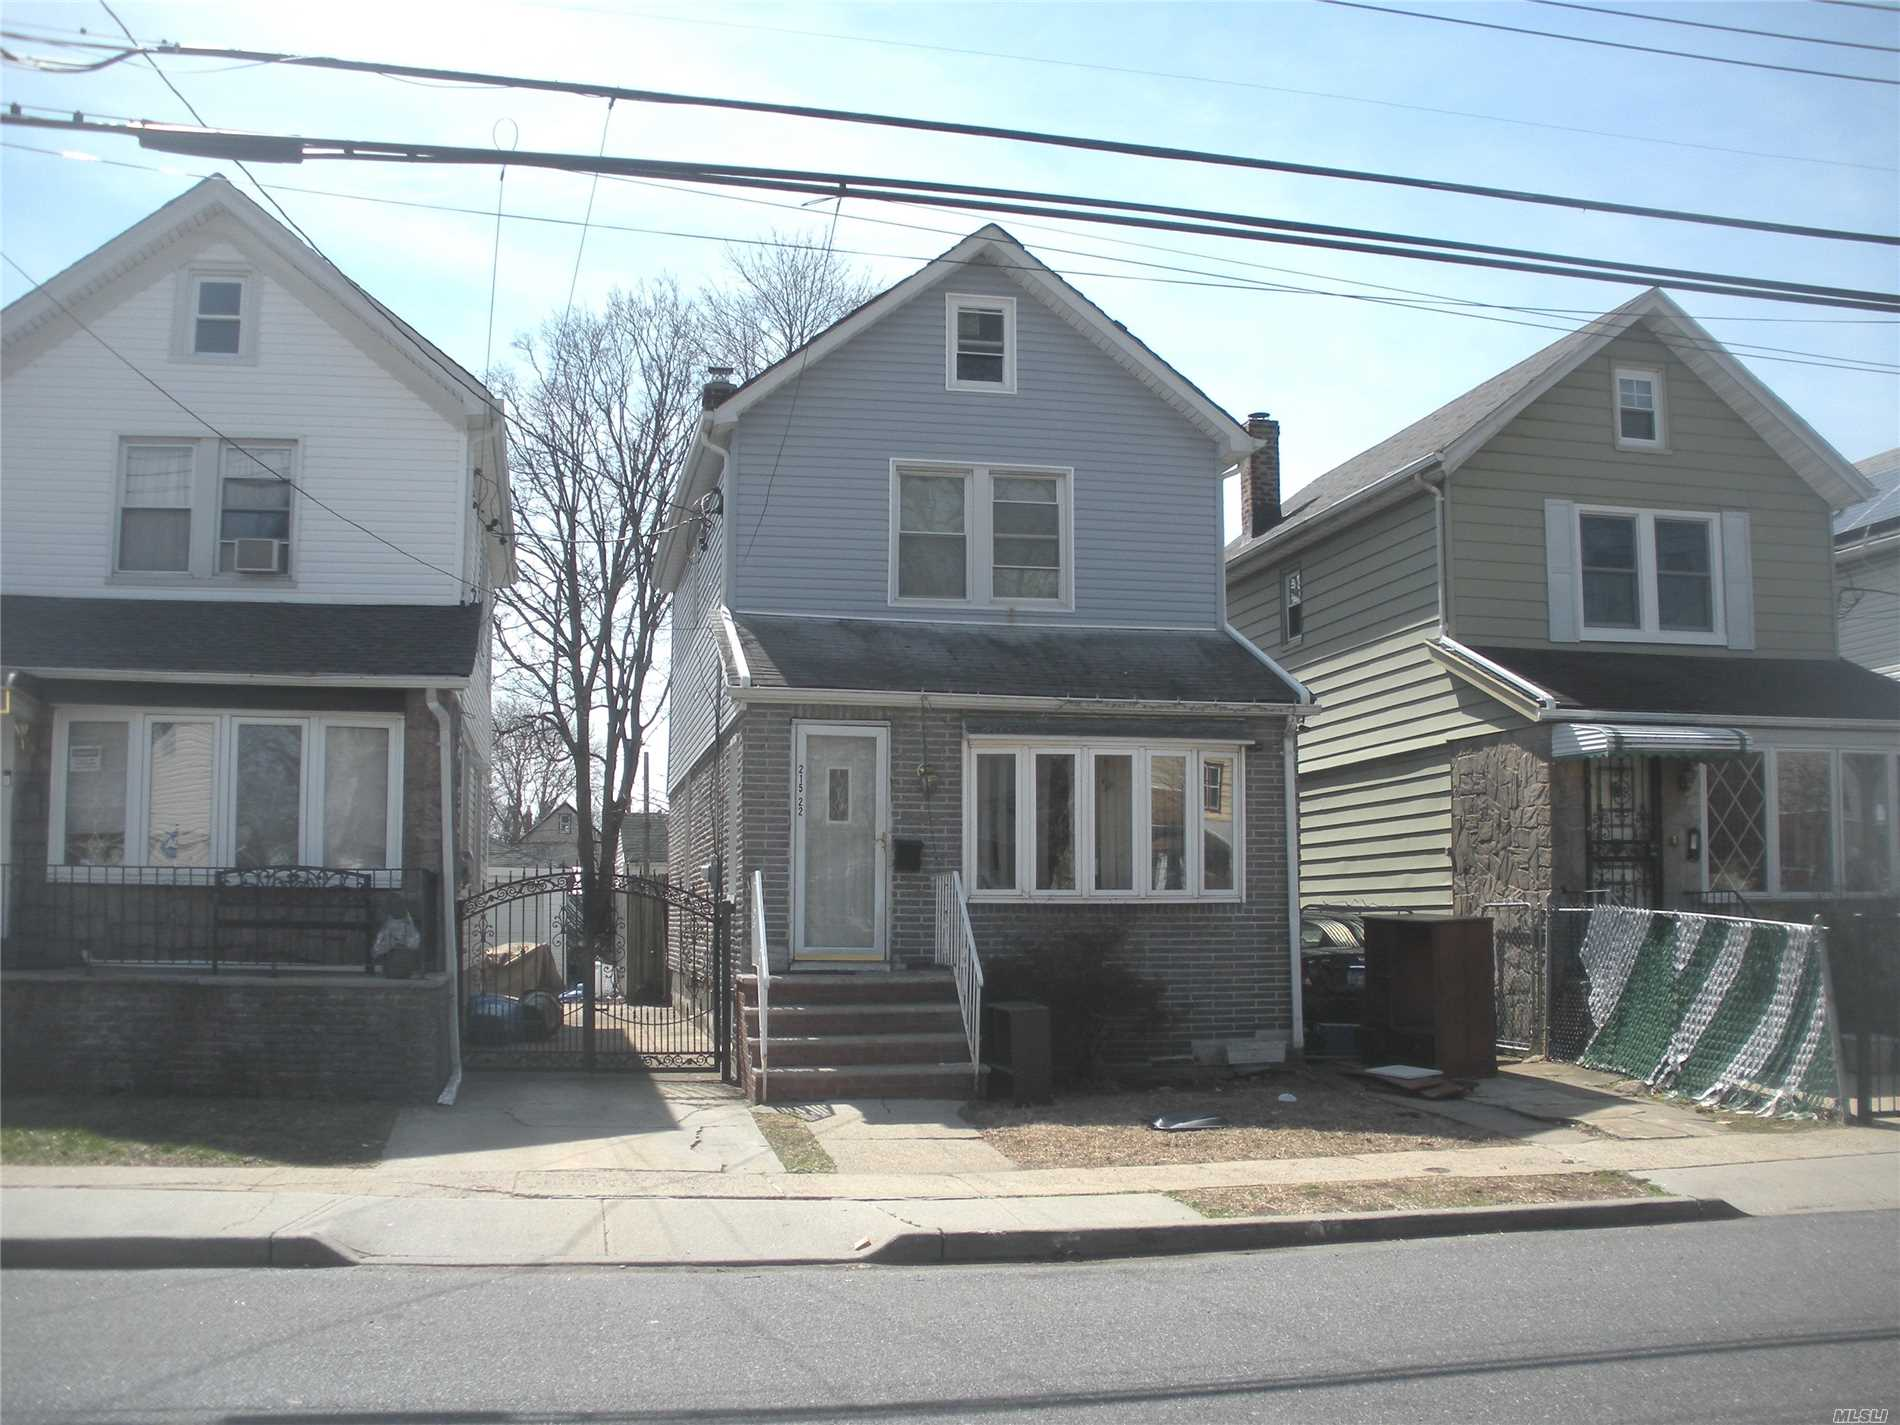 Detached bright and sunny three bedroom and one bathroom. Finished basement with exterior access.